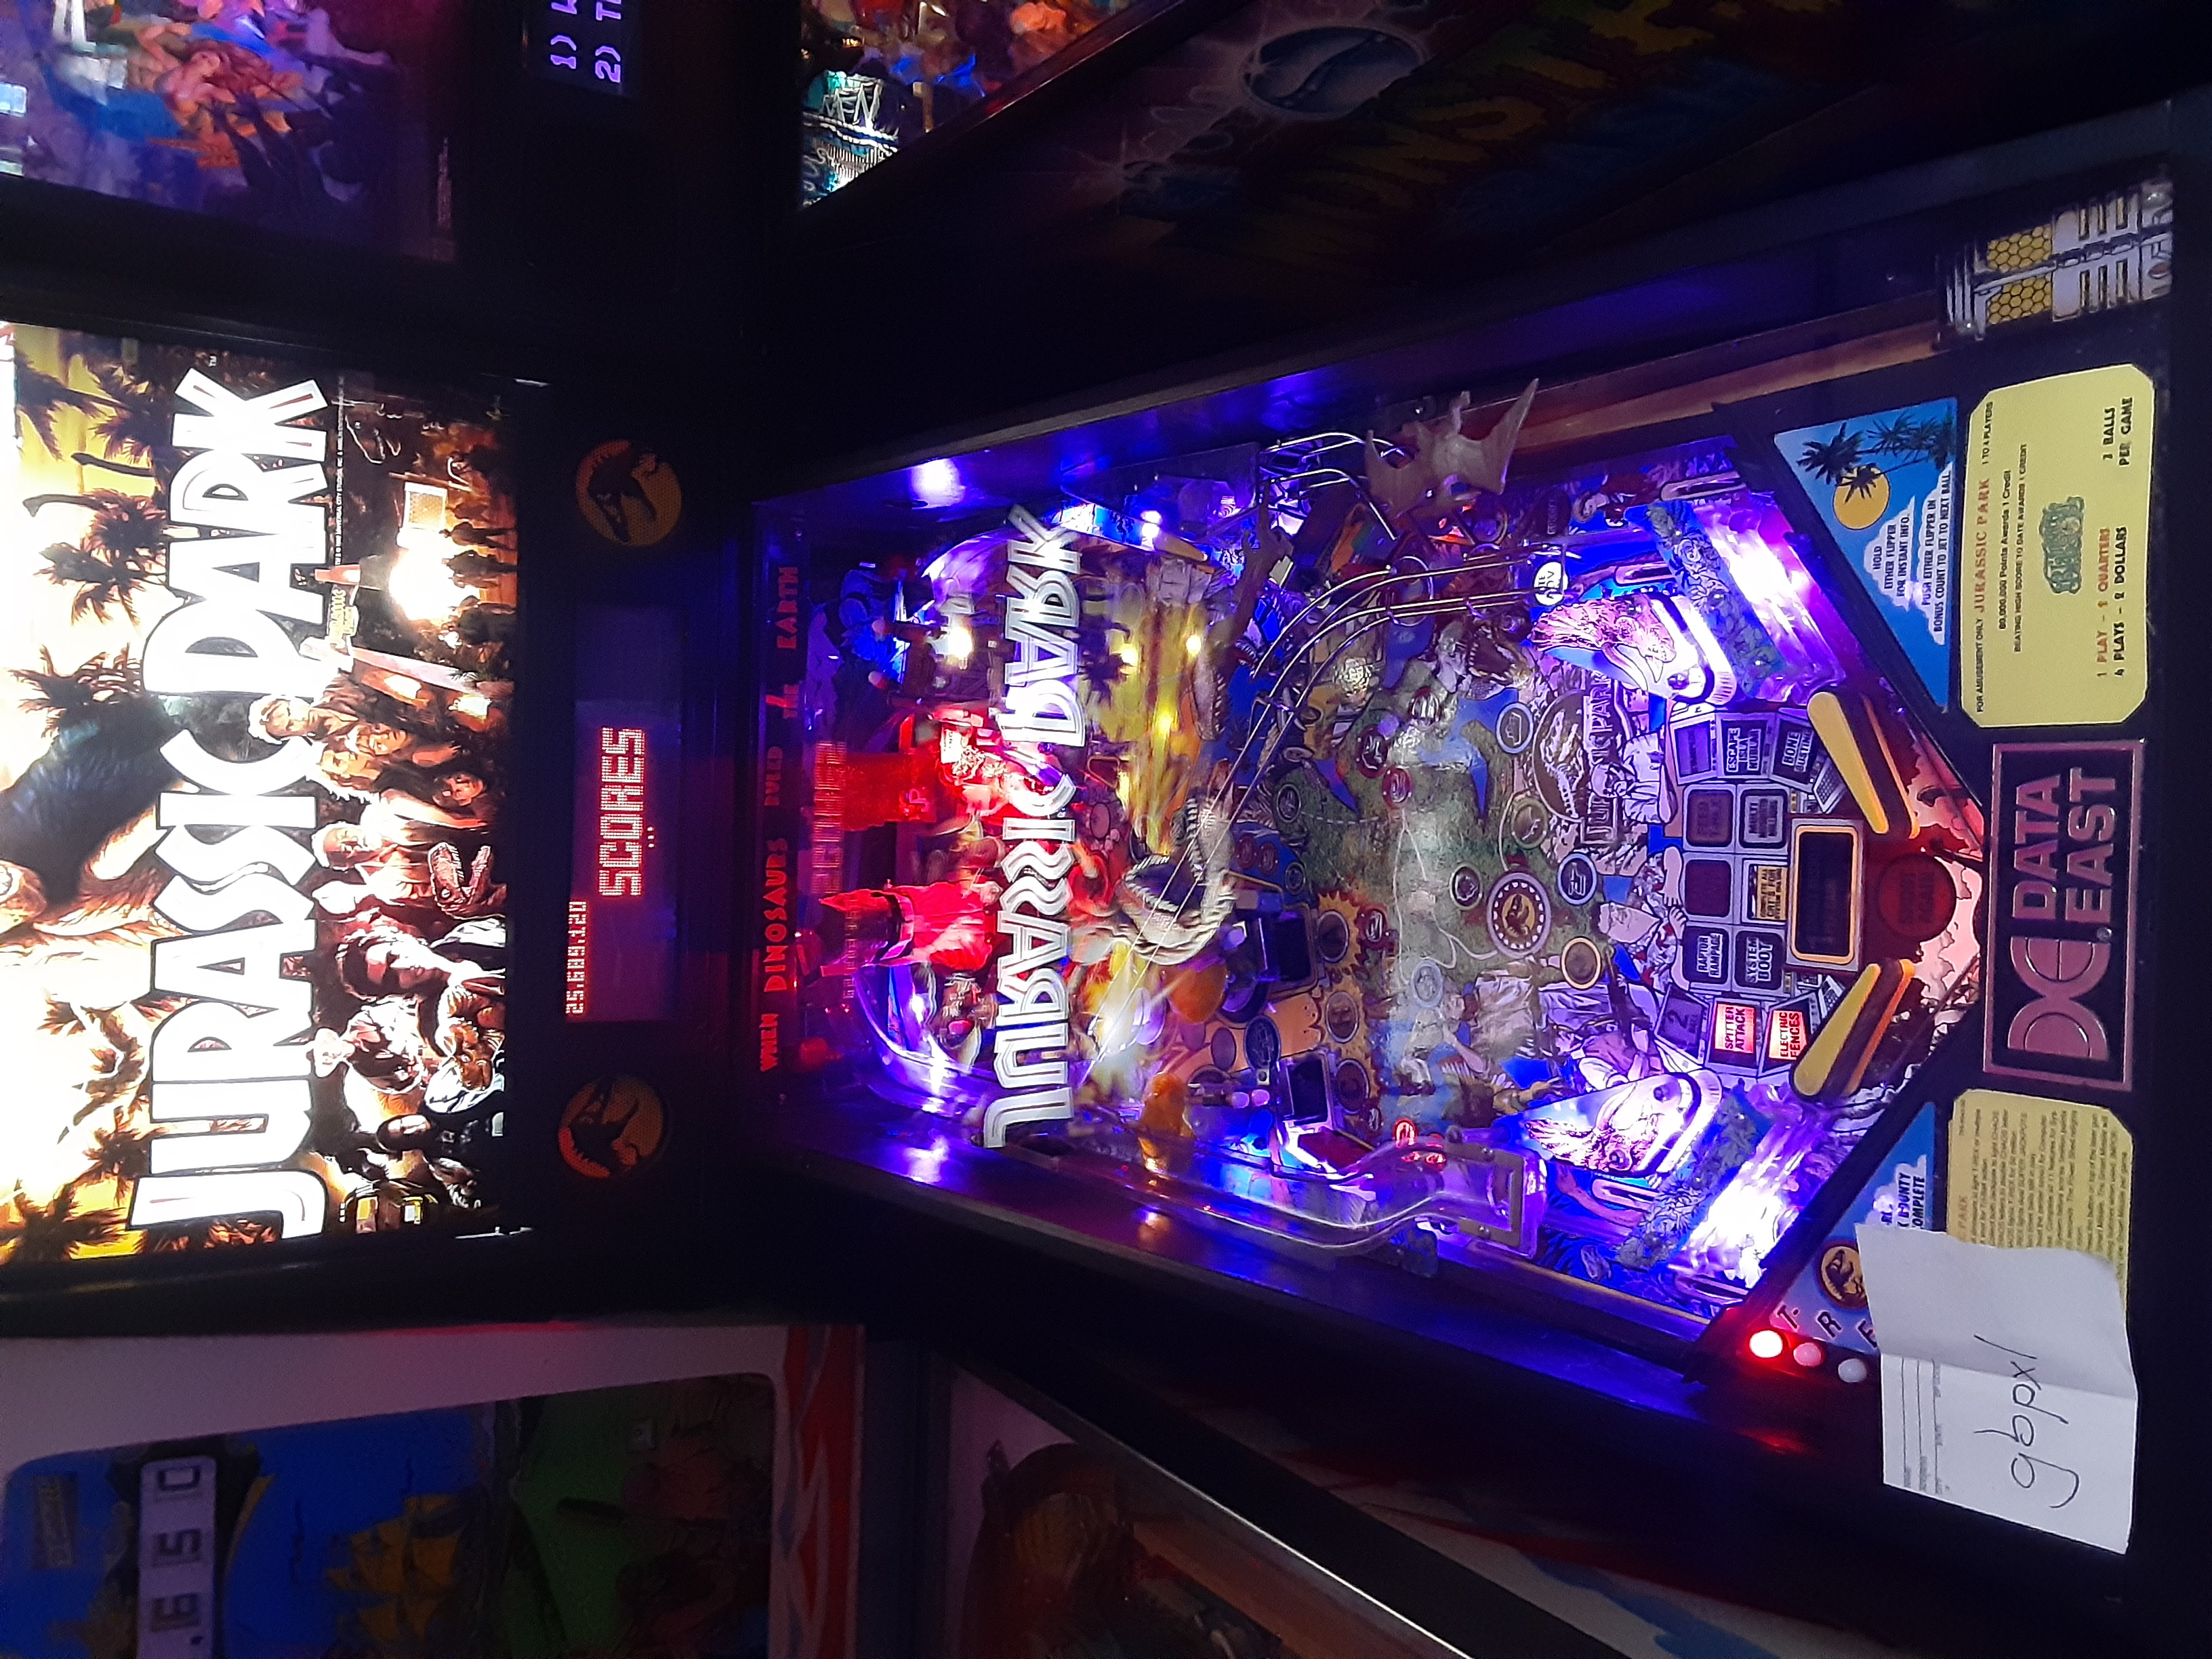 gbpxl: Jurassic Park (Pinball: 3 Balls) 25,689,120 points on 2020-01-04 20:15:50